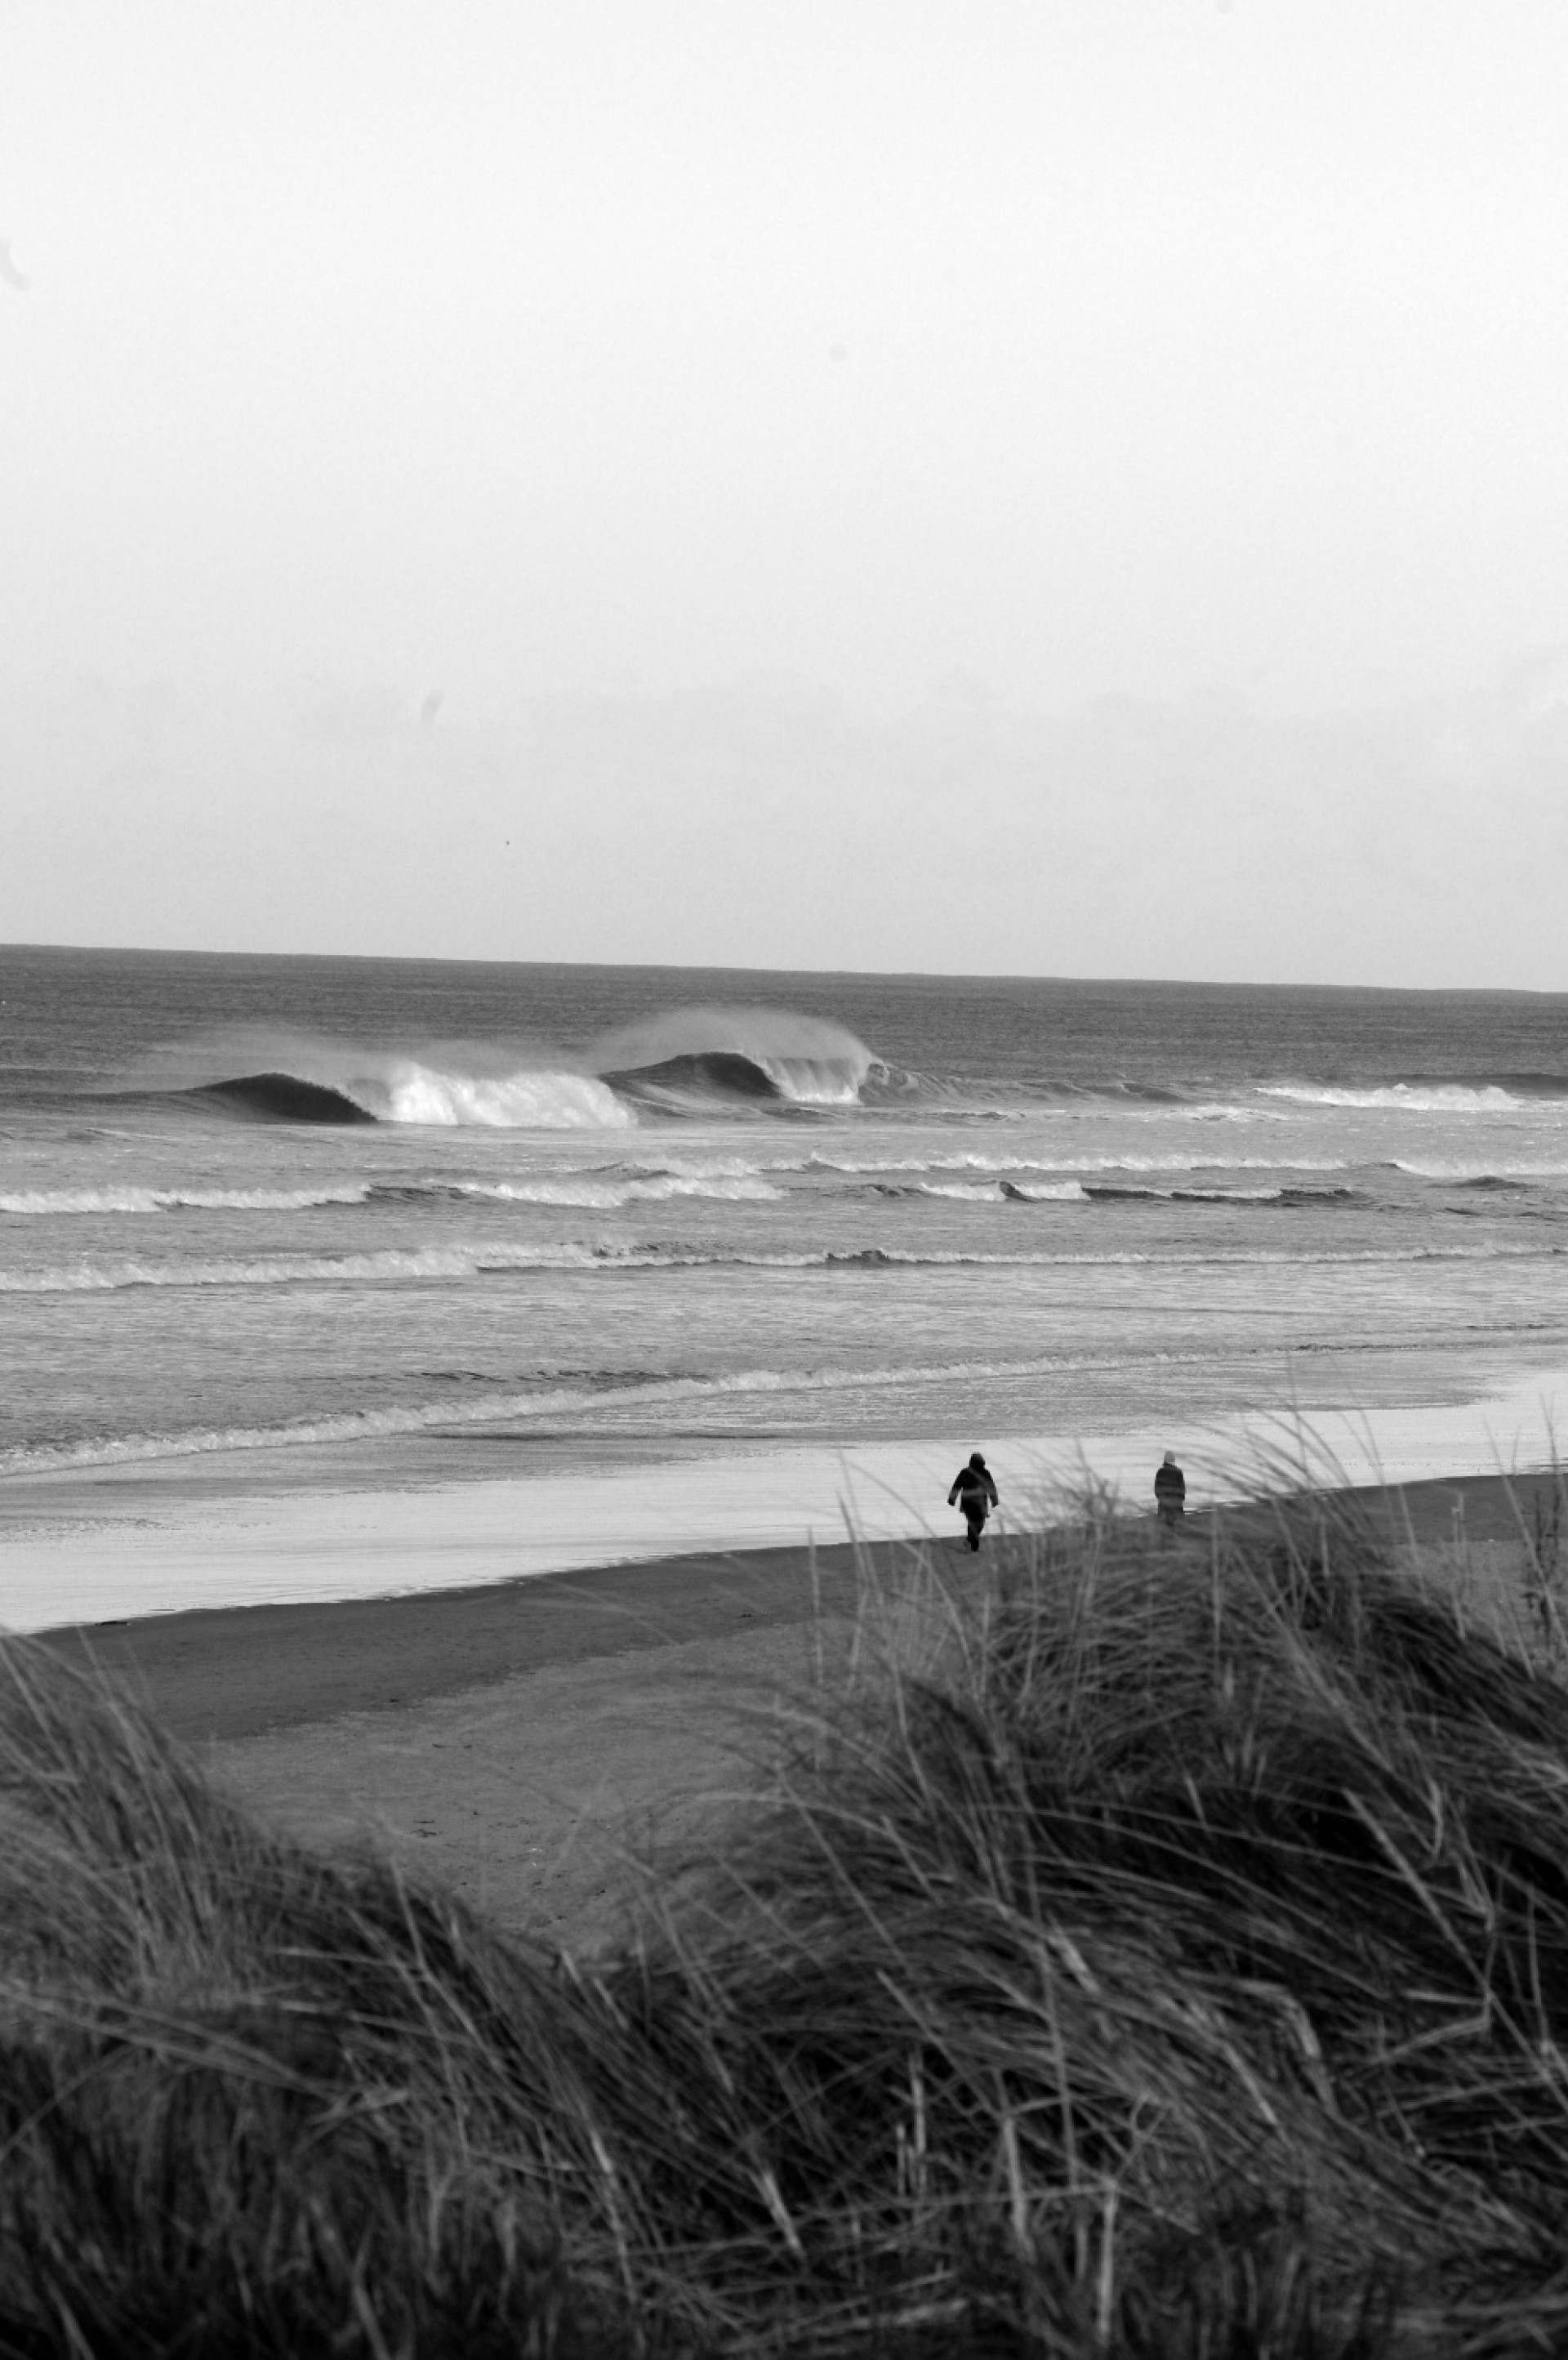 Marty McAuley's photo of Portrush